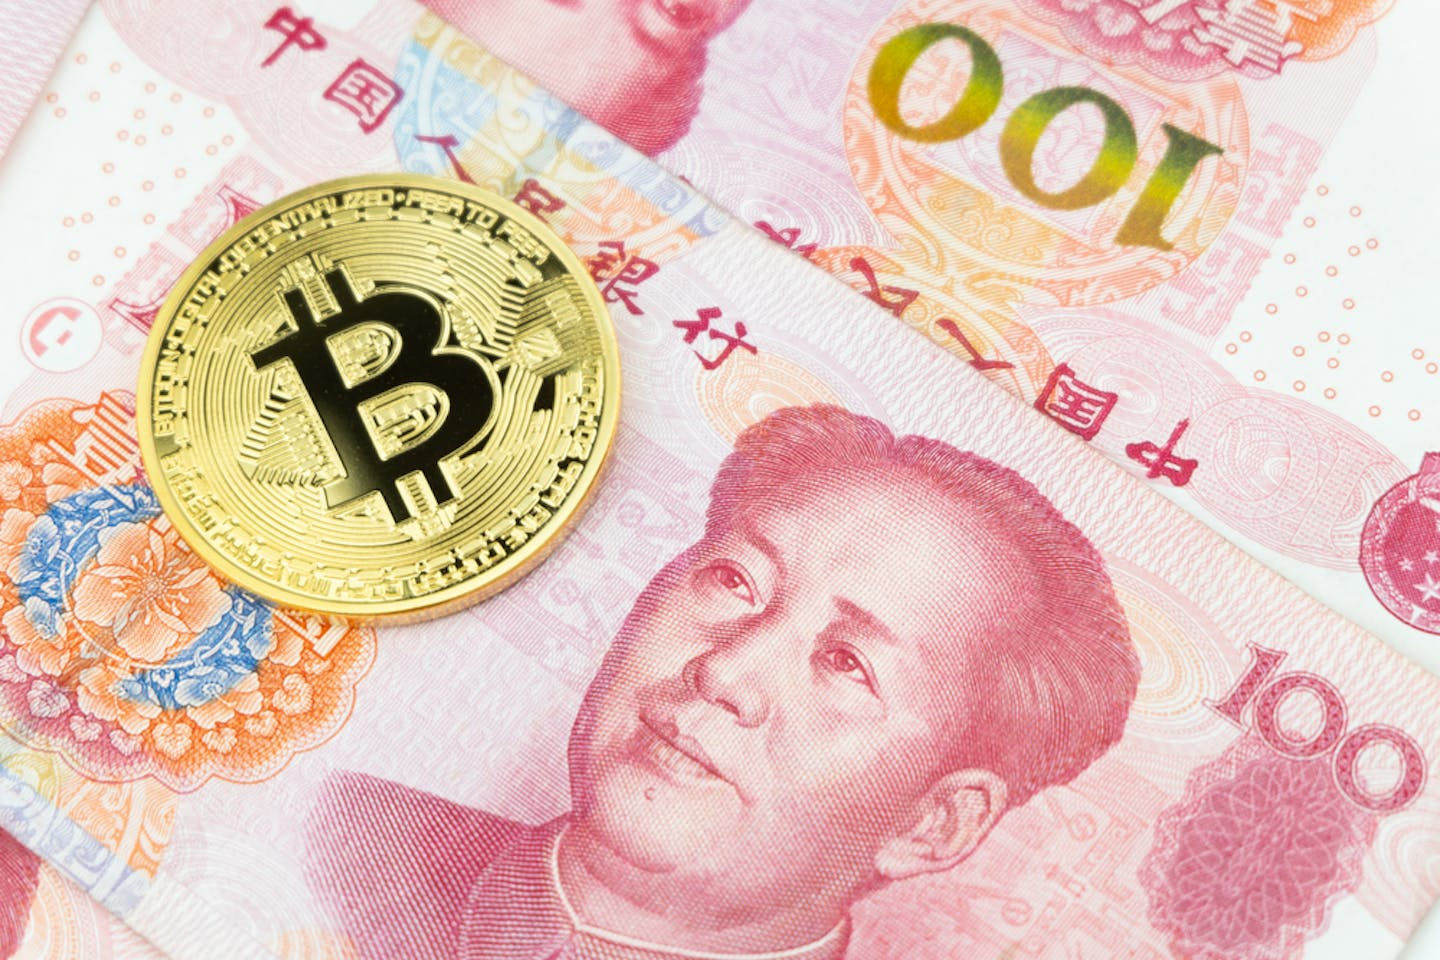 Golden bitcoin with Chinese yuan banknotes